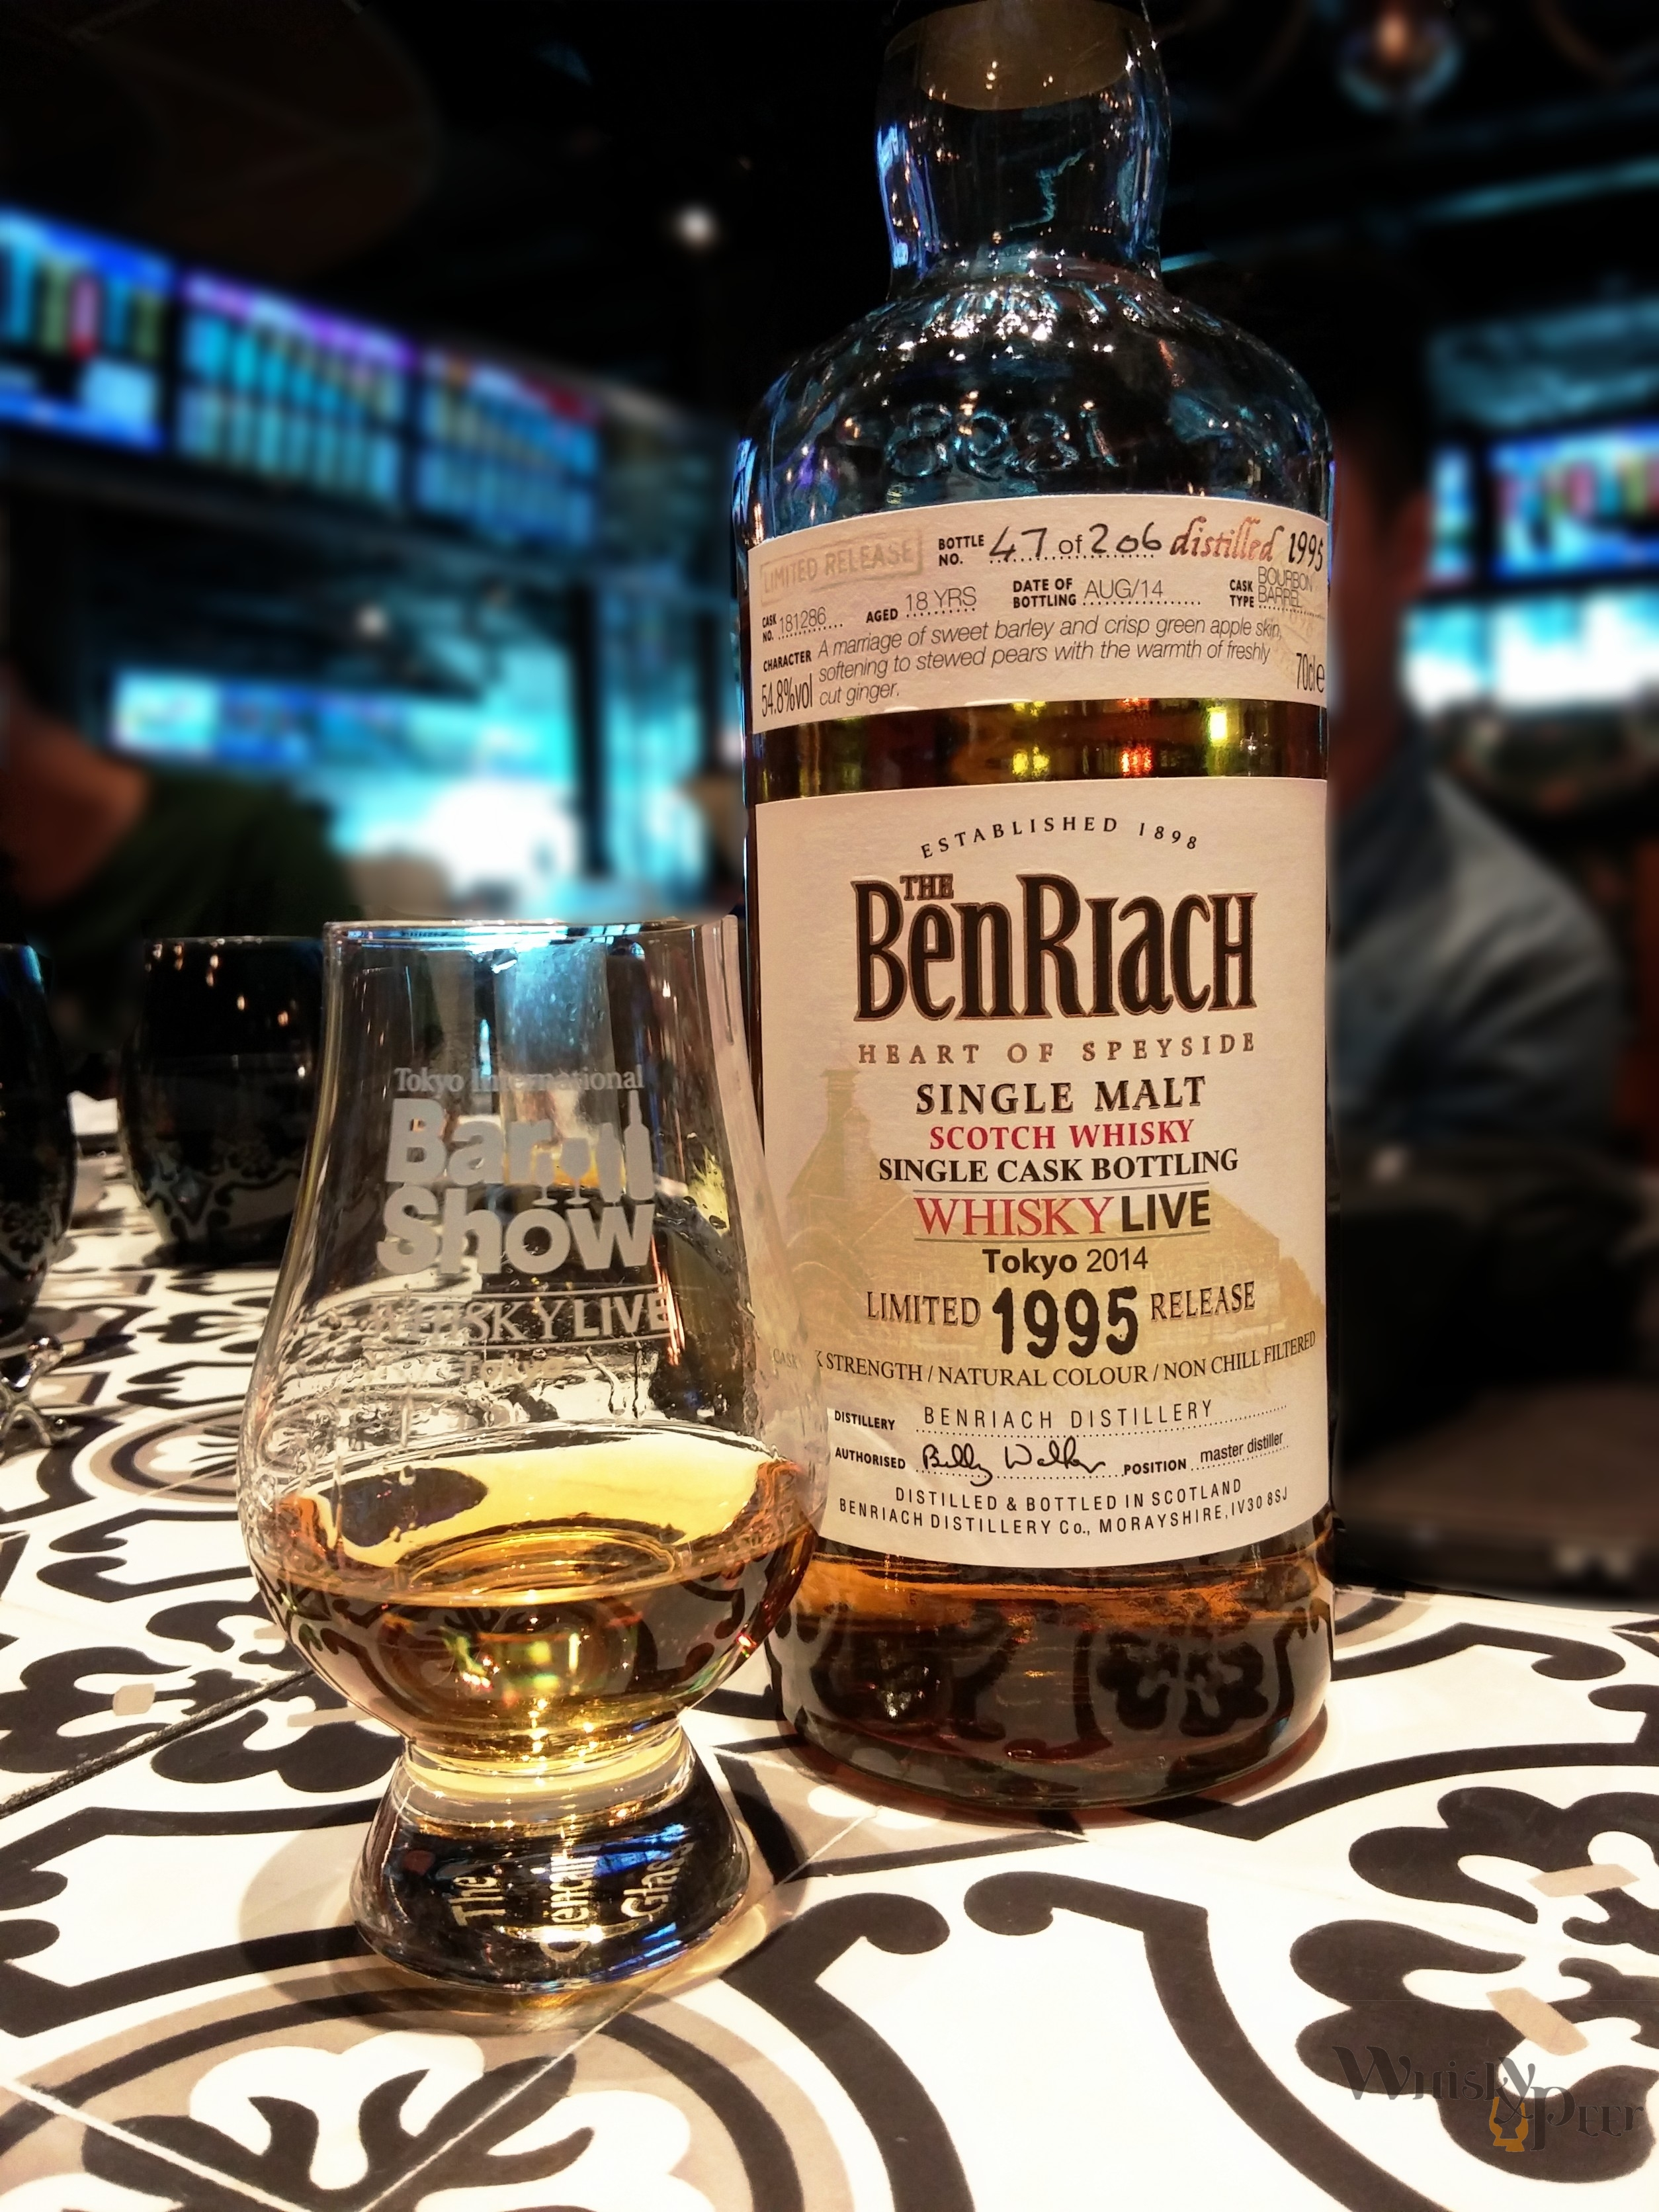 Benriach 1995 Bottle for Whiskylive 2014